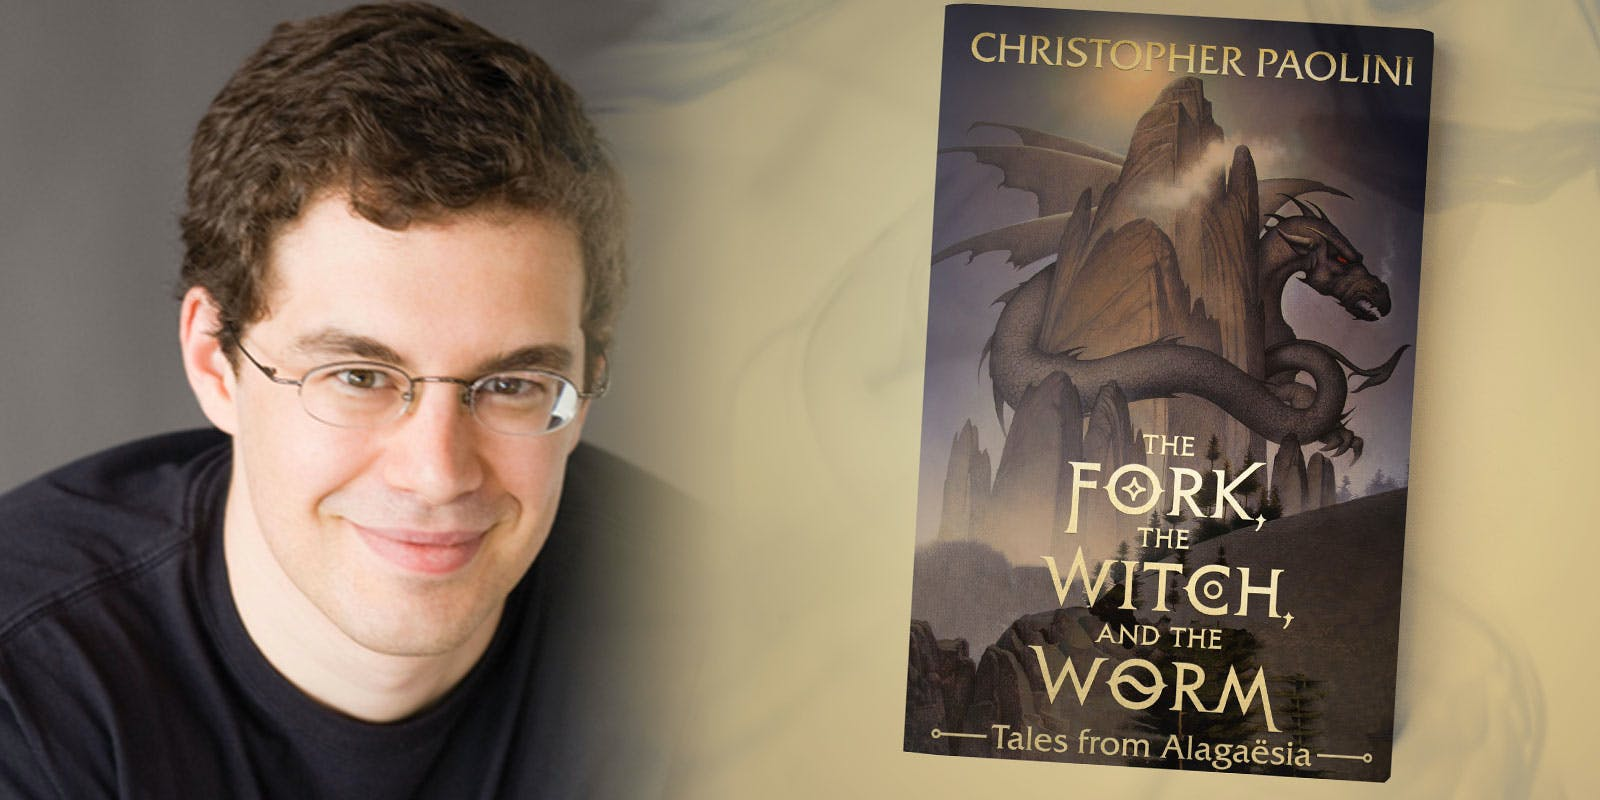 A conversation with Christopher Paolini